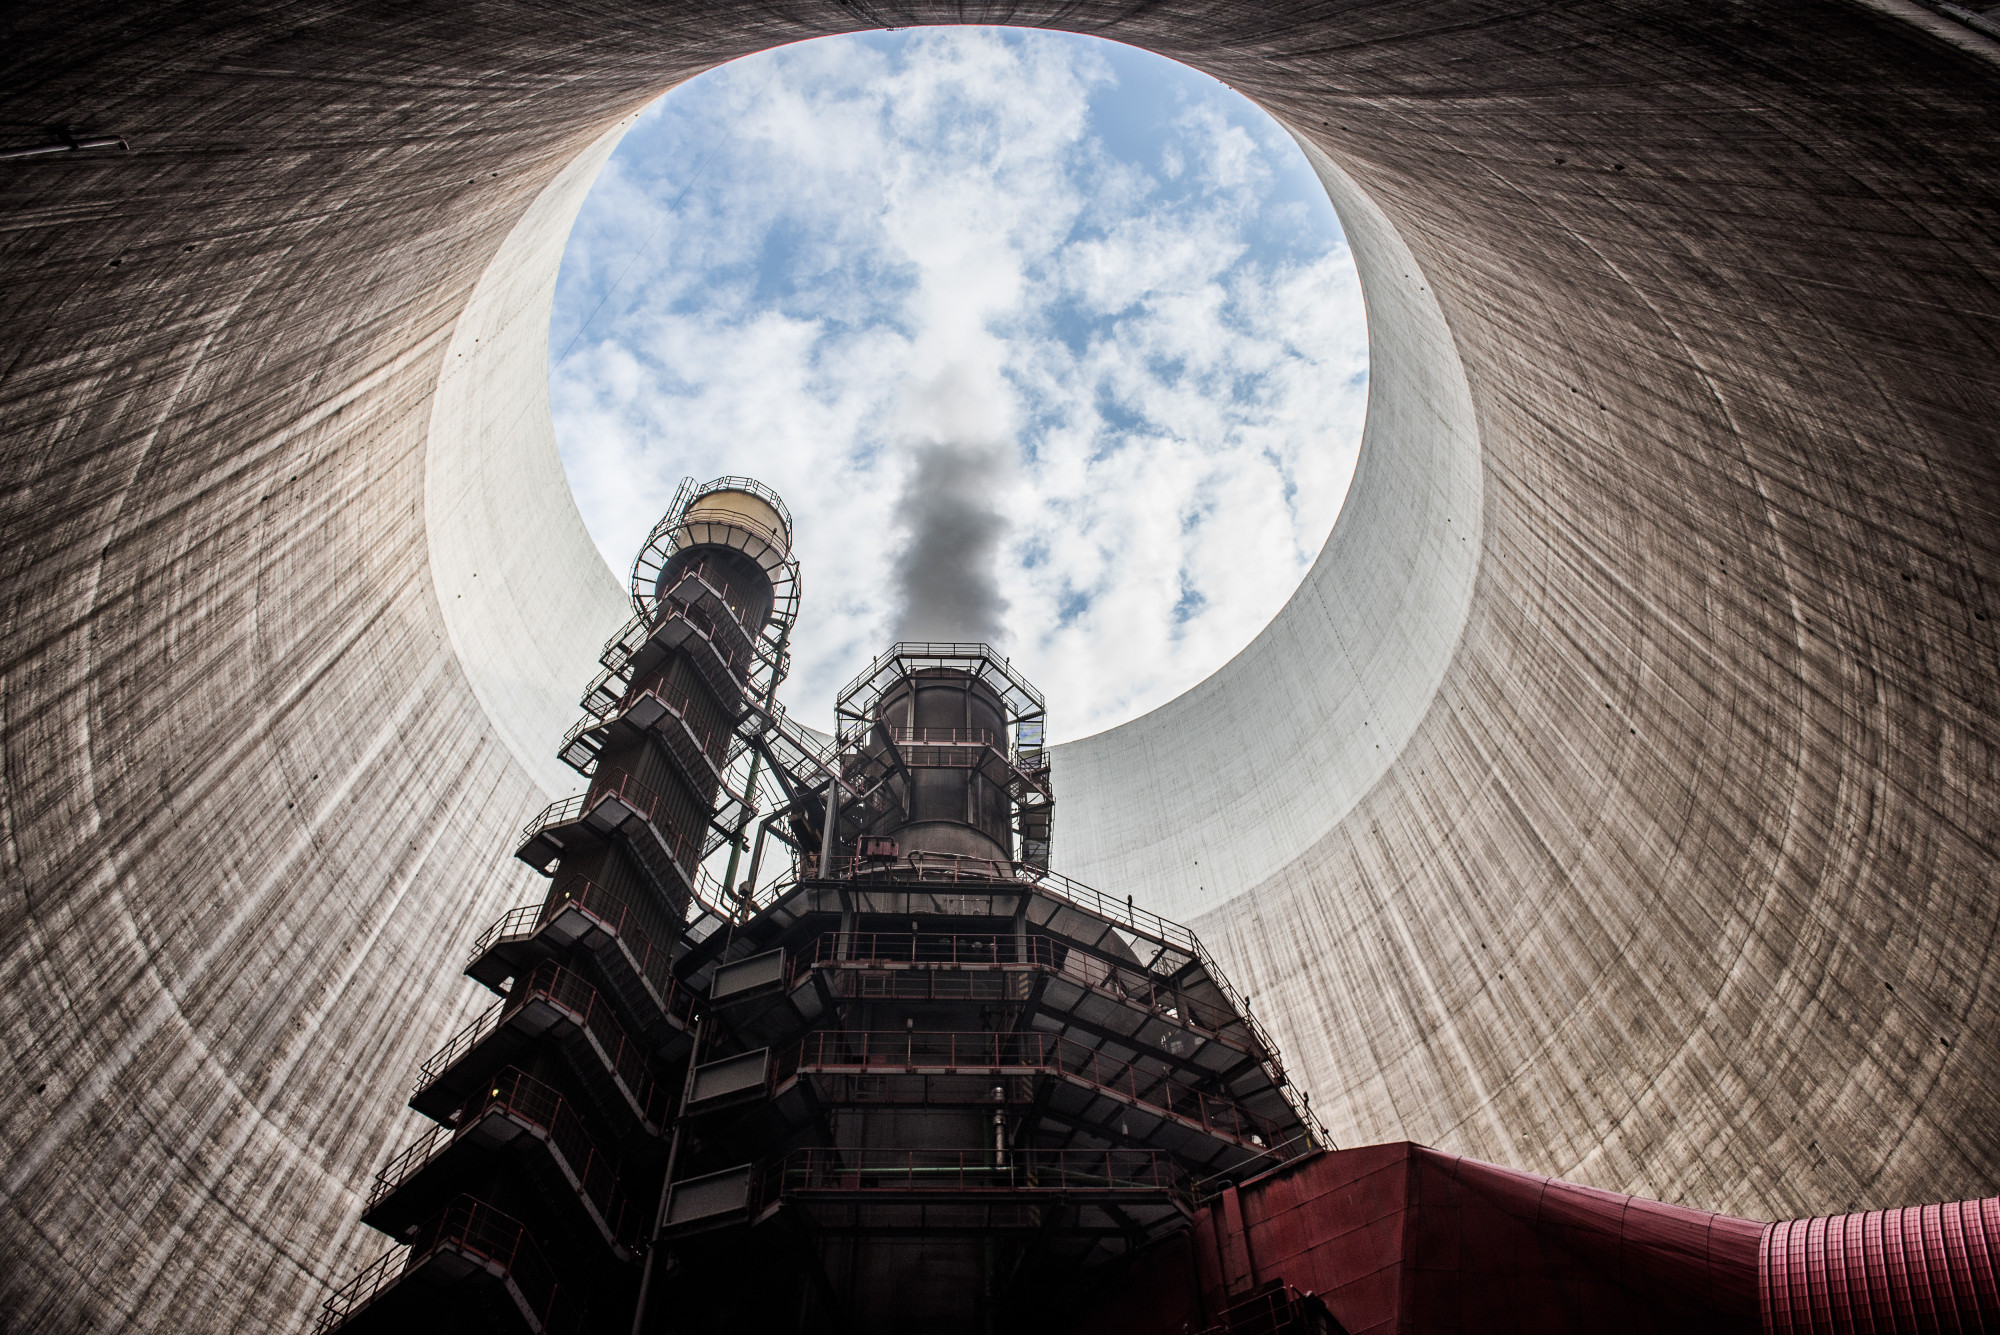 Steam rises from within a cooling tower at the Visonta coal power station, operated by Matrai Eromu Zrt, in Visonta, Hungary, on Wednesday, July 27, 2016. Coal for delivery in Europe in 2017 will fall about 11 percent by December, taking the gloss off the longest rally in year-ahead prices since 2010, according to a survey of traders and analysts by Bloomberg. Photographer: Akos Stiller/Bloomberg